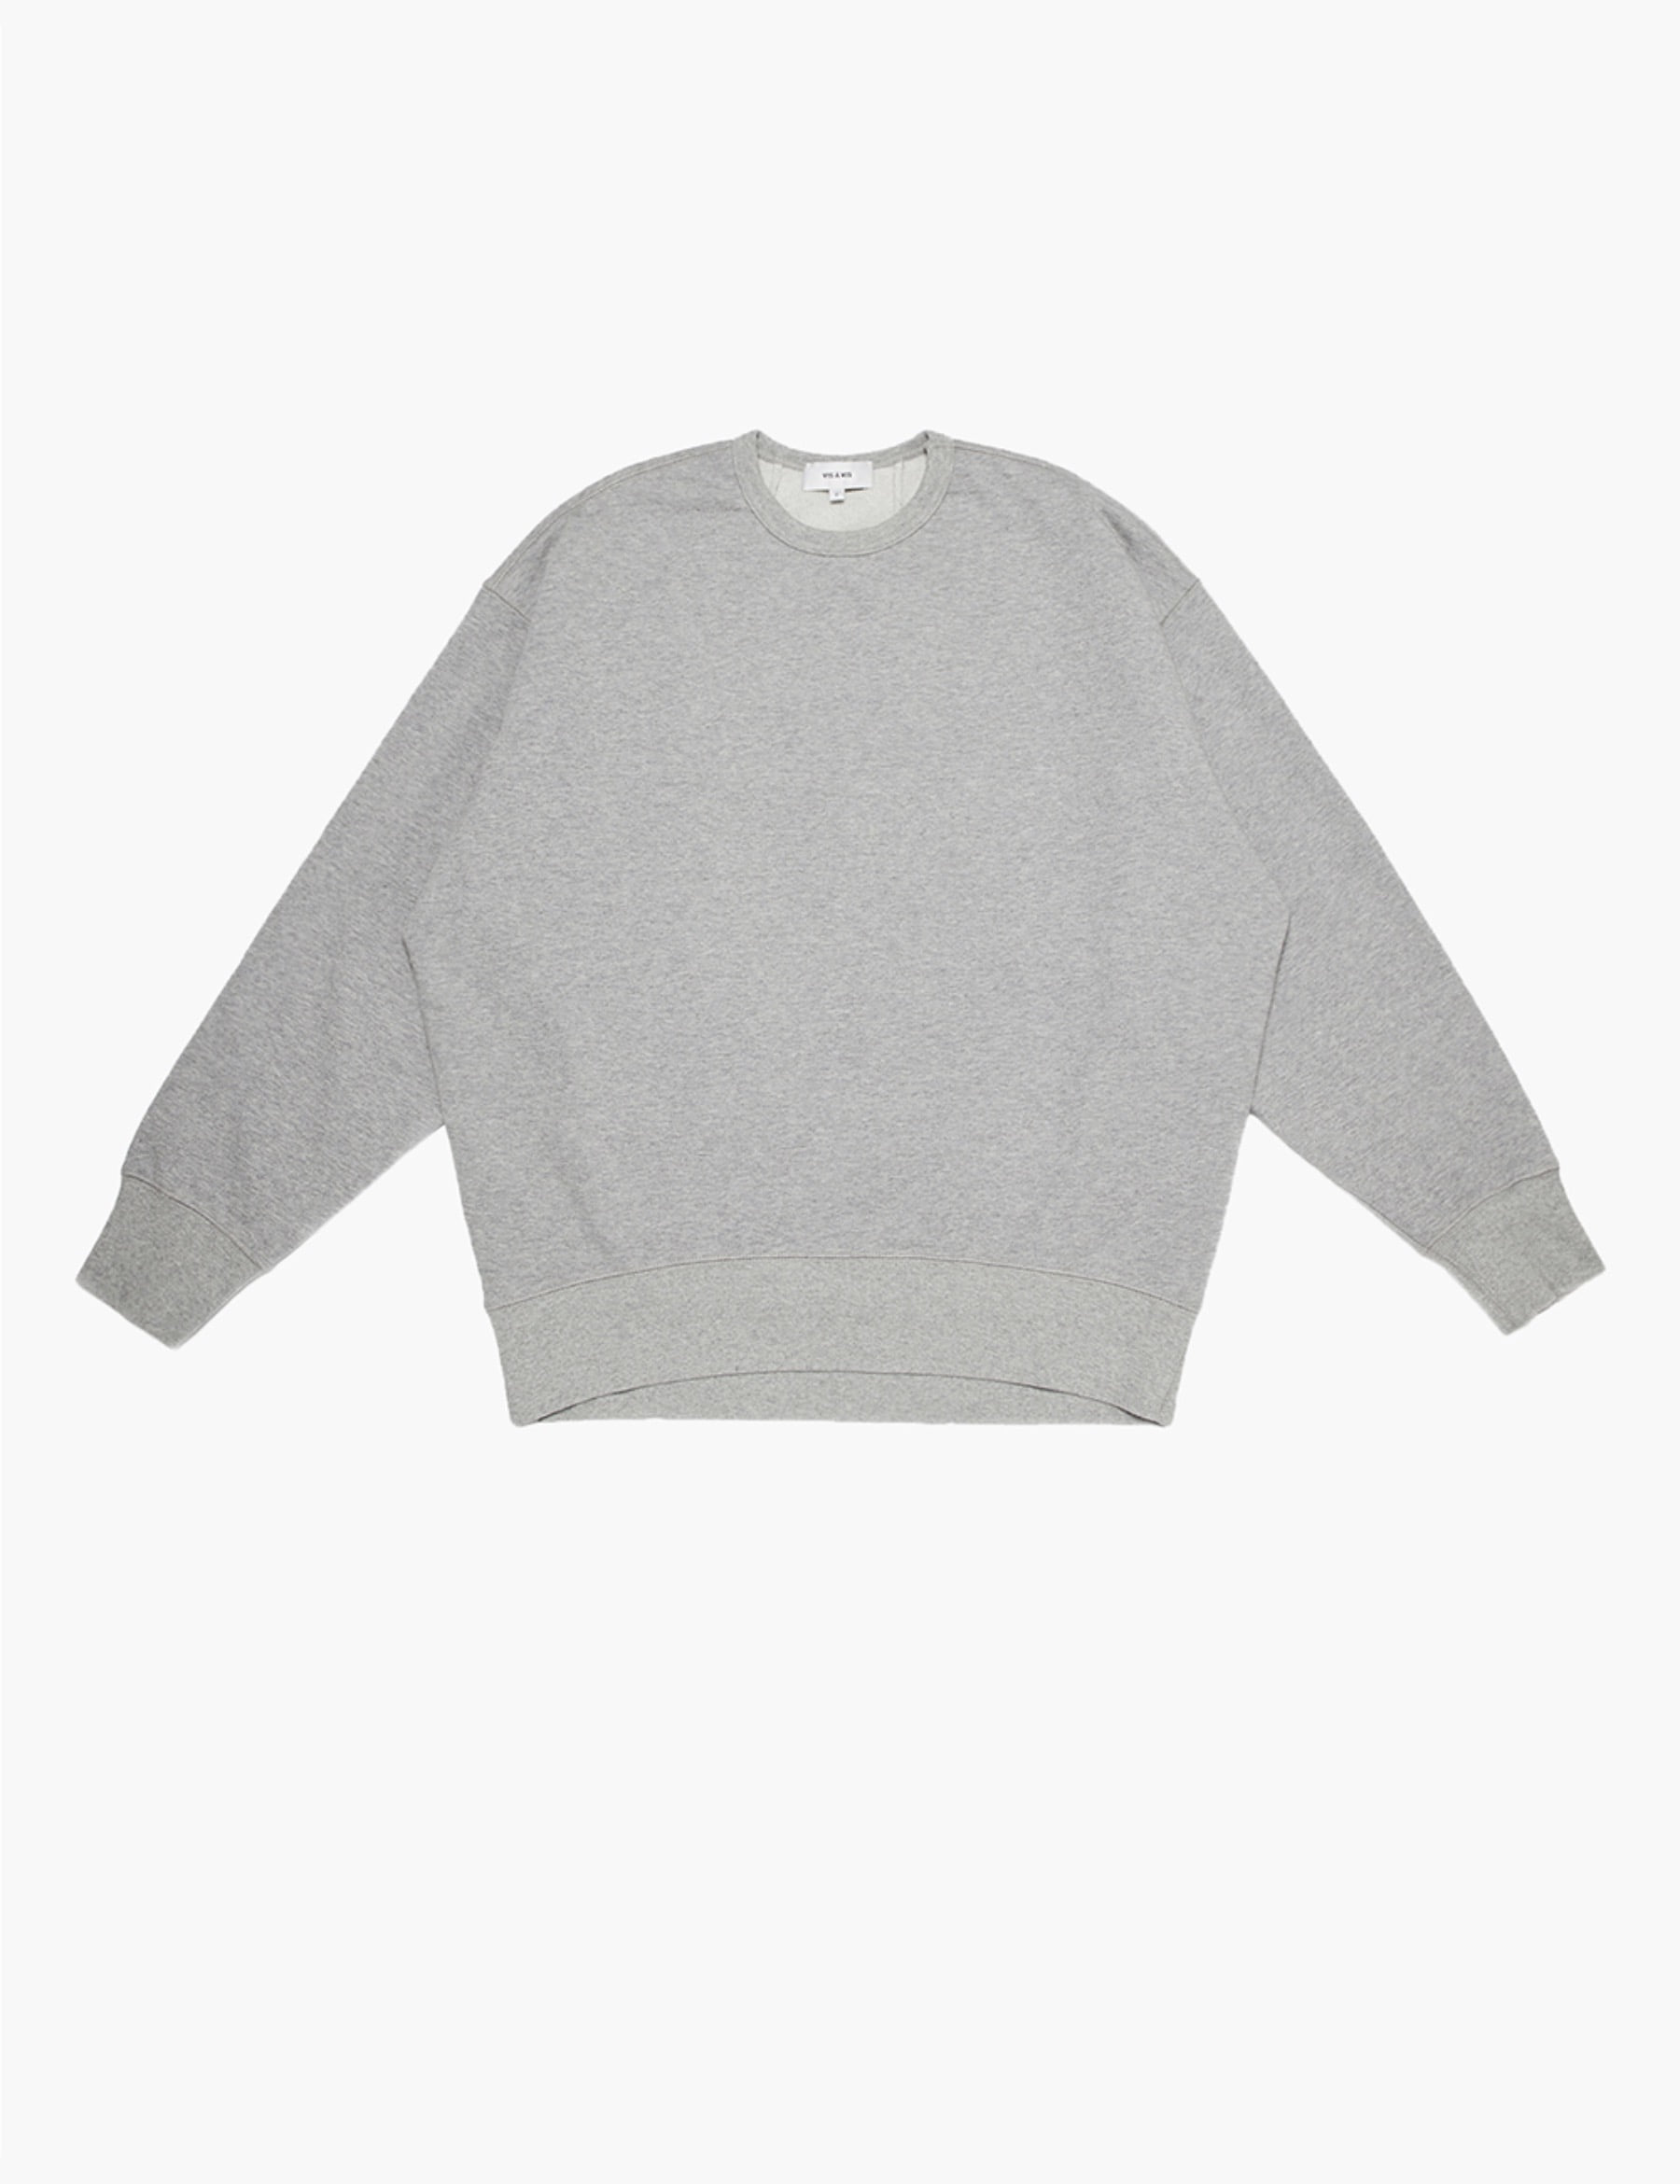 SWEATSHIRT (GRAY)